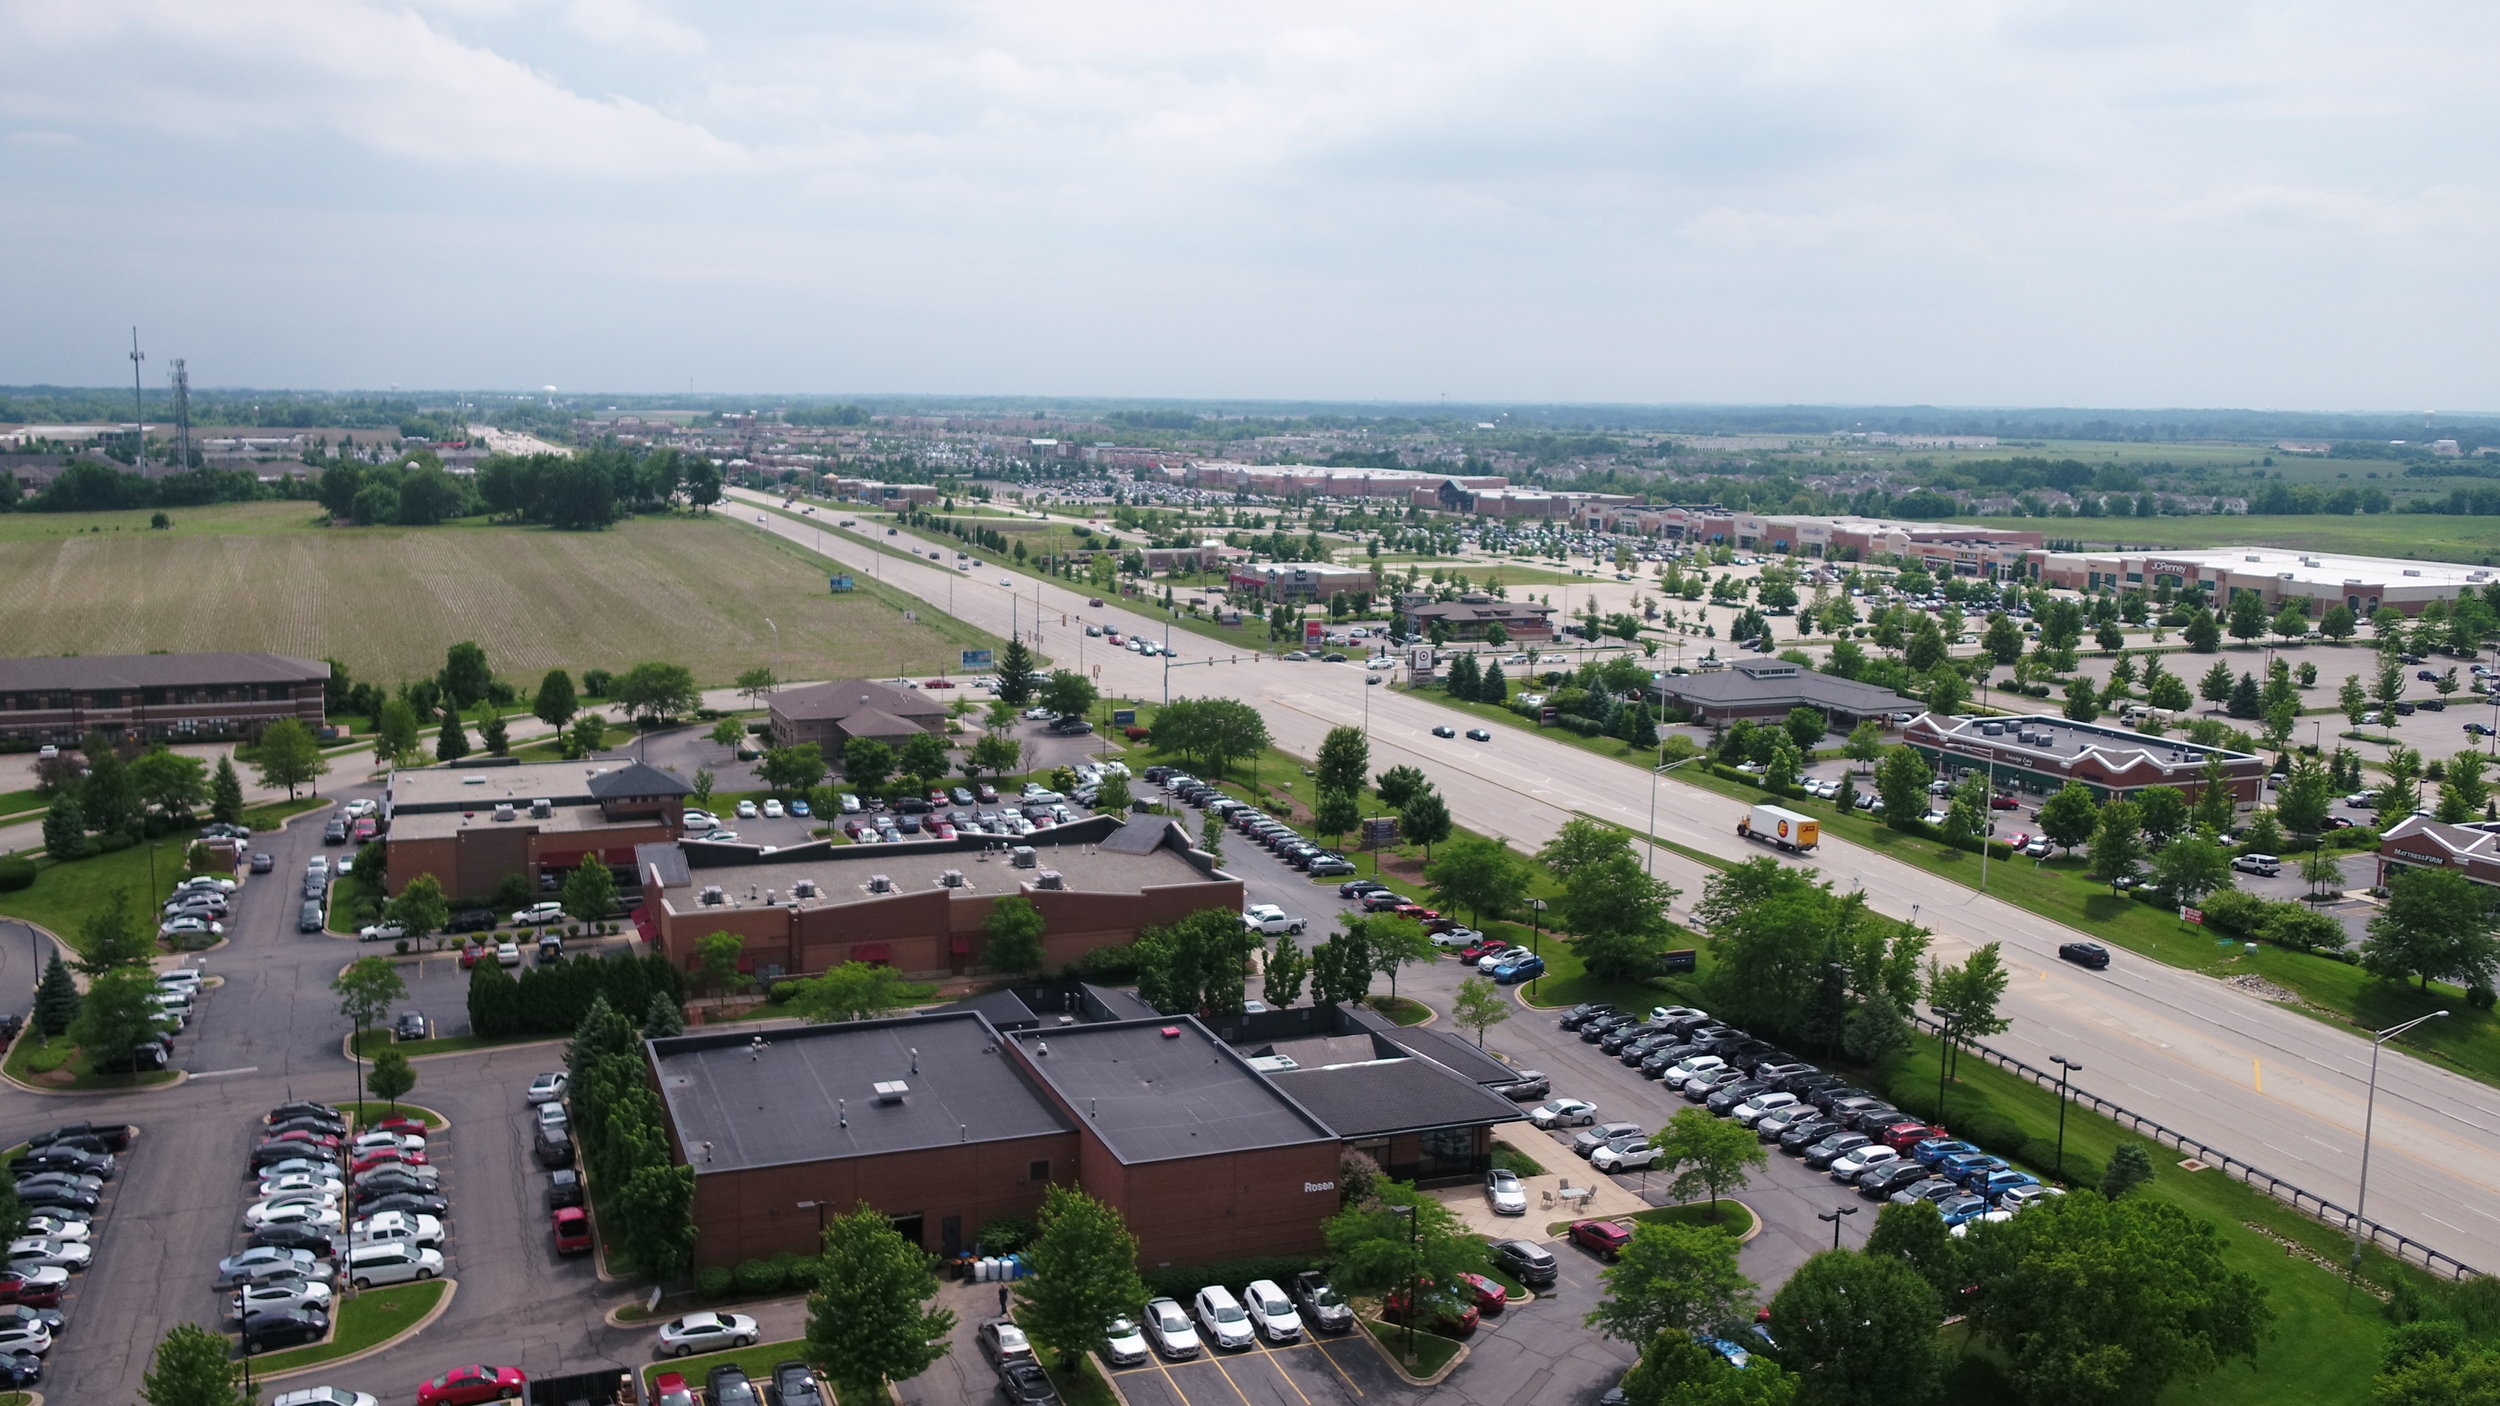 View from Above the Randall Road Retail Corridor